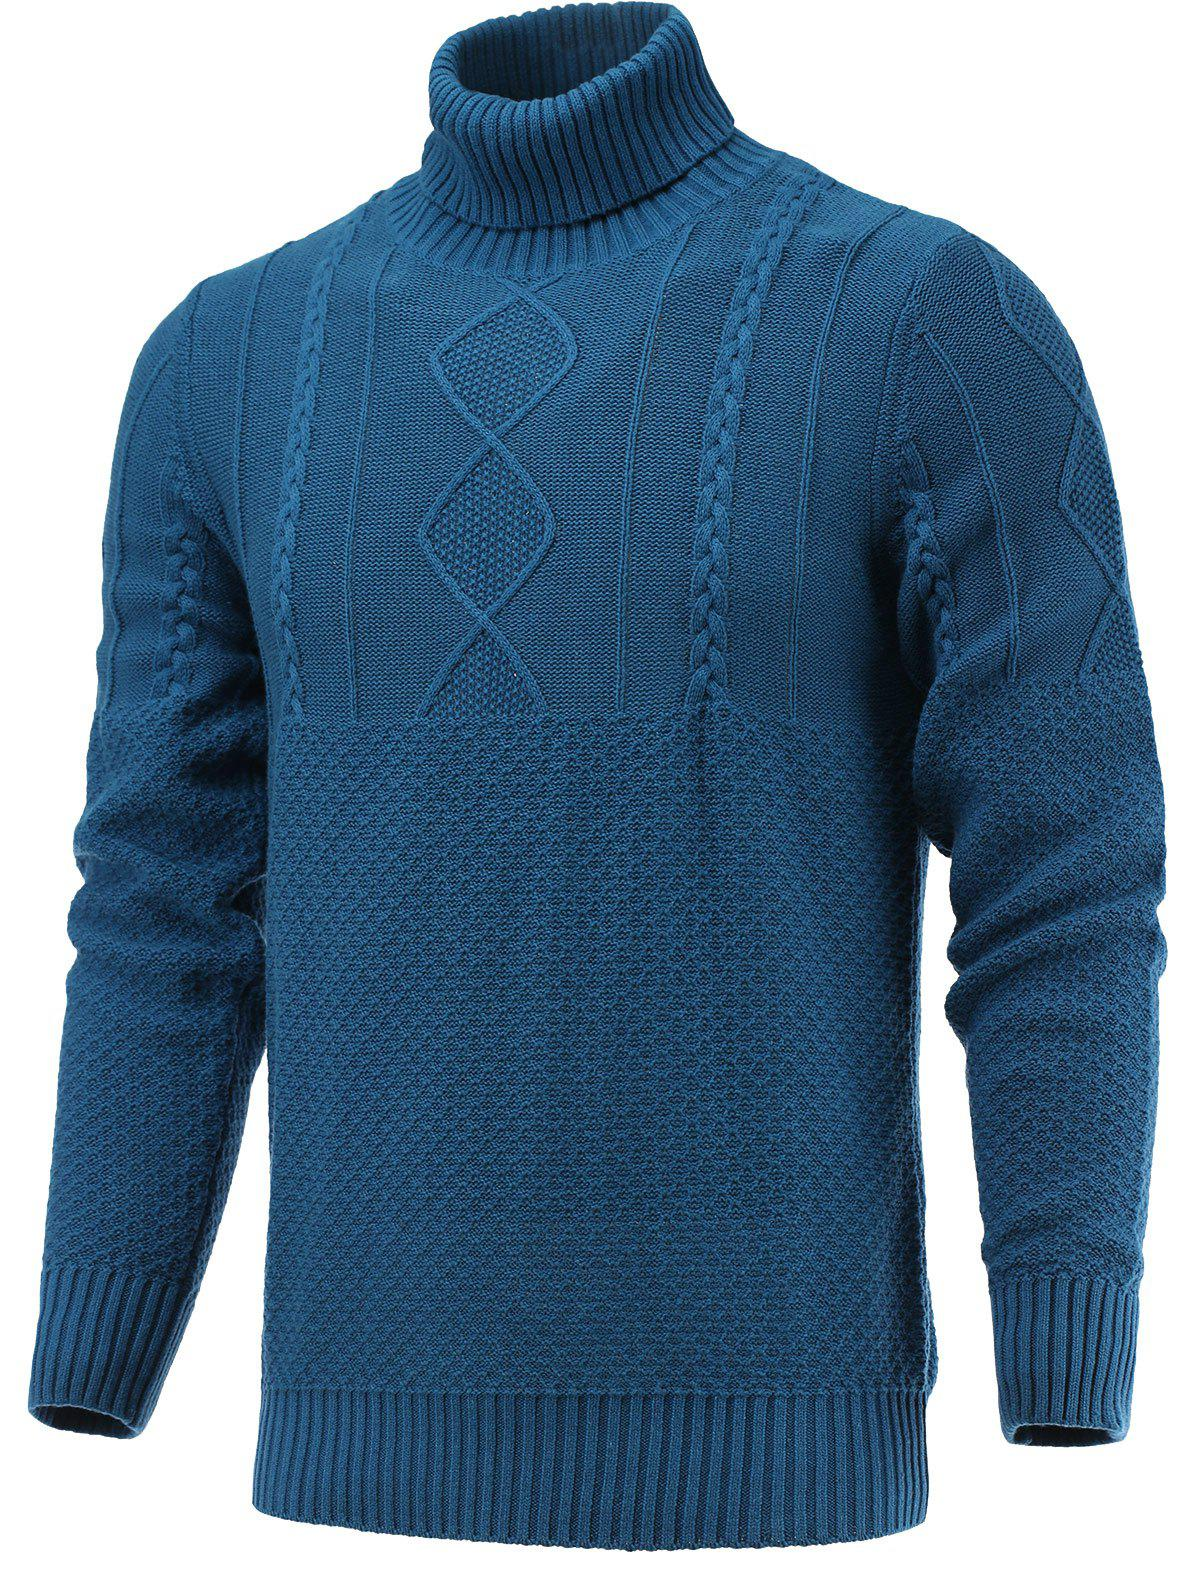 Turtleneck Geometric Knitted Sweater - BLUE XL